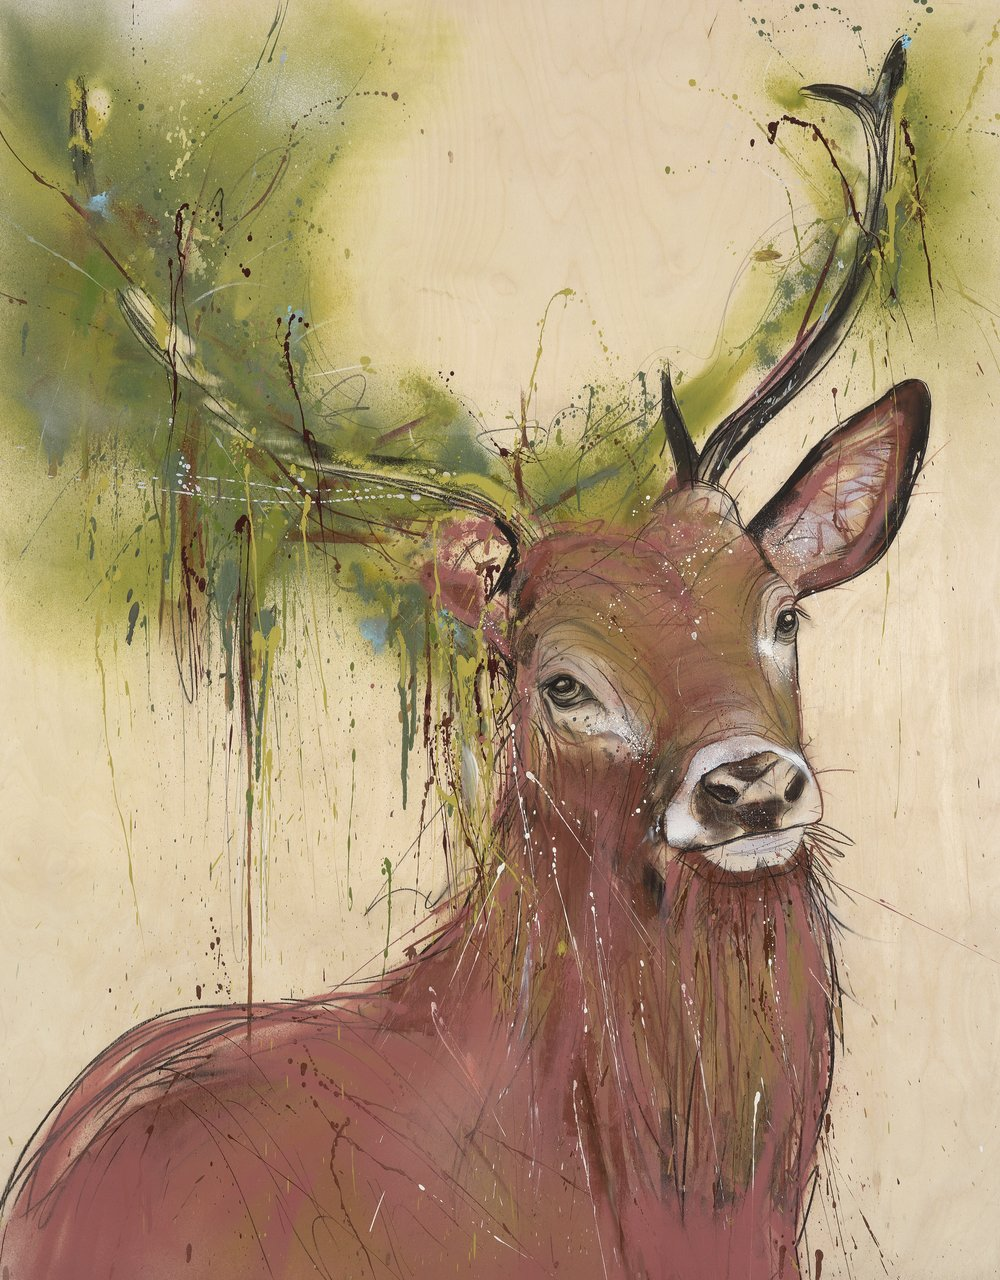 King Henry's Stag I , Original spray paint & conté on birch ply, 120 x 95cm